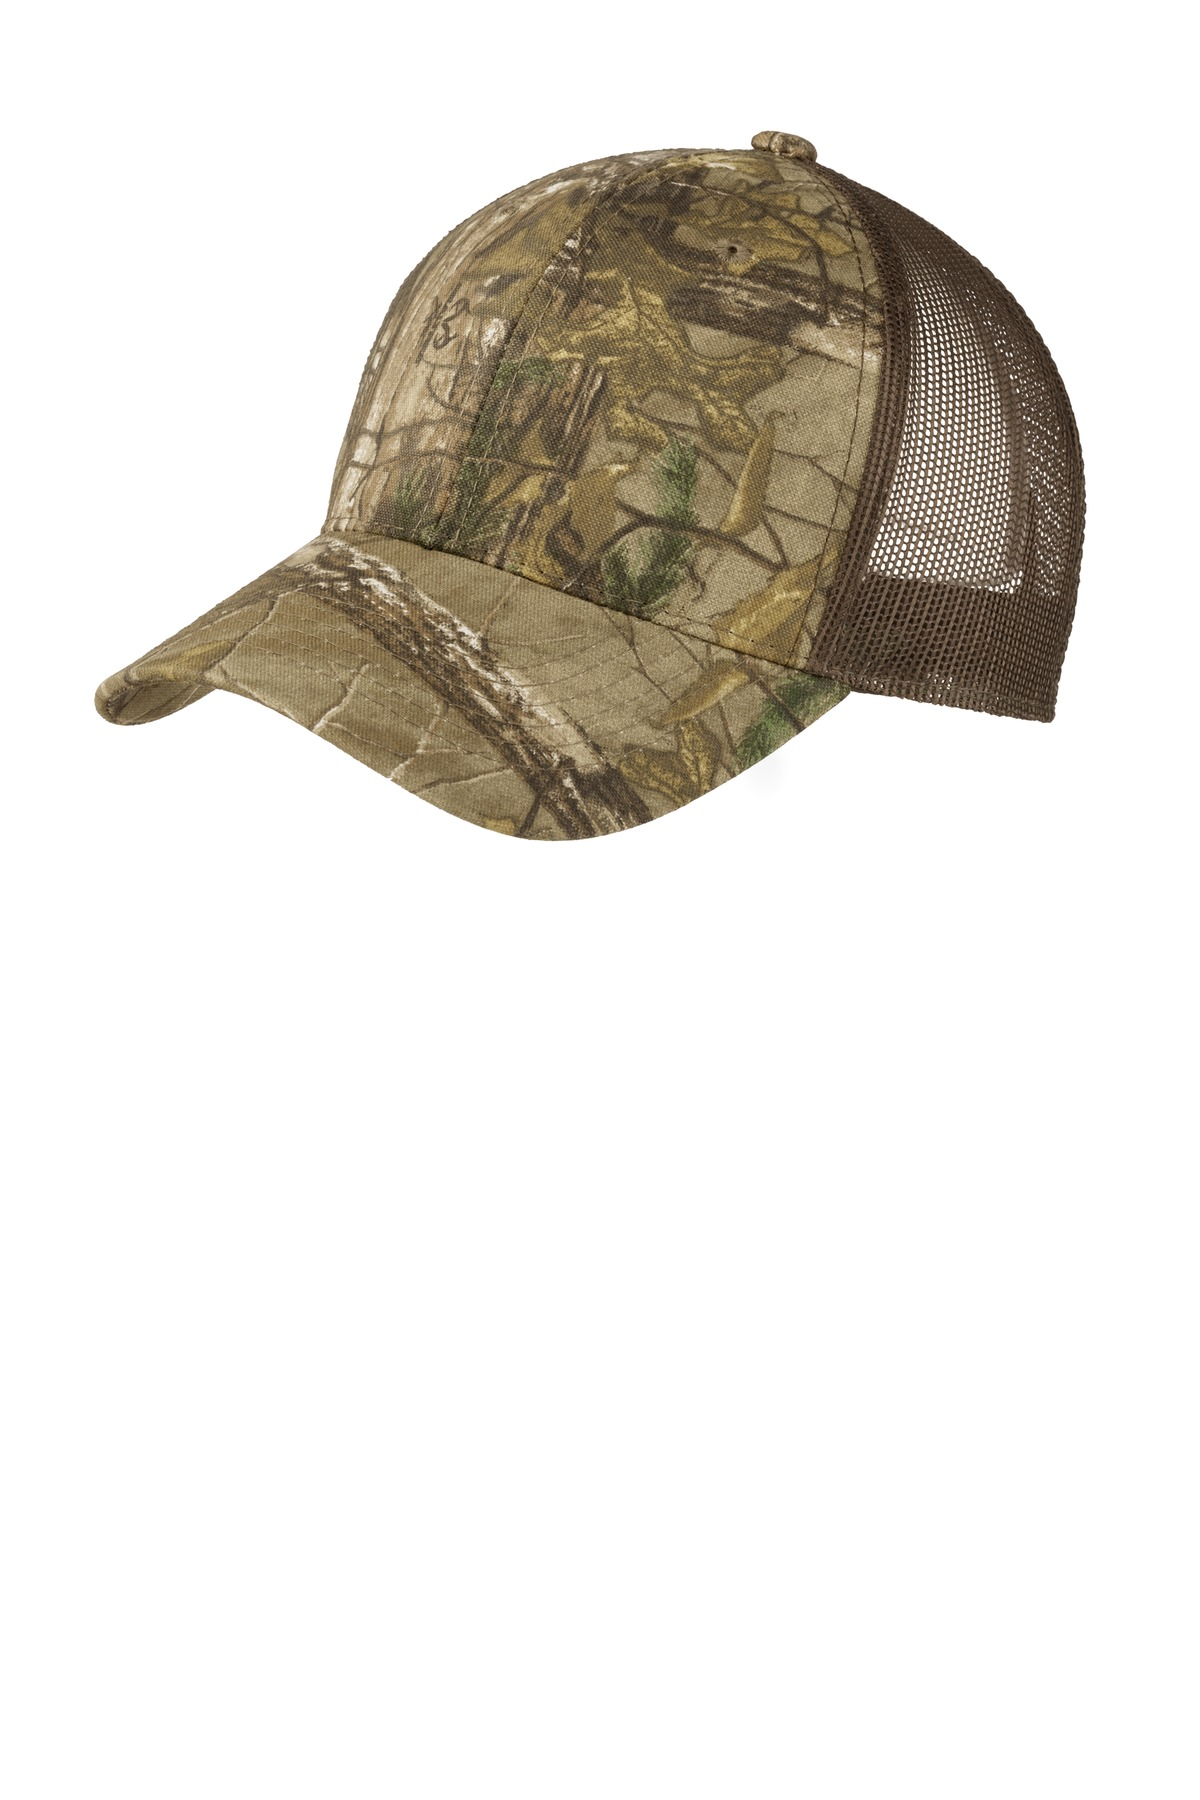 Port Authority ®  Structured Camouflage Mesh Back Cap. C930 - Realtree Xtra/ Brown